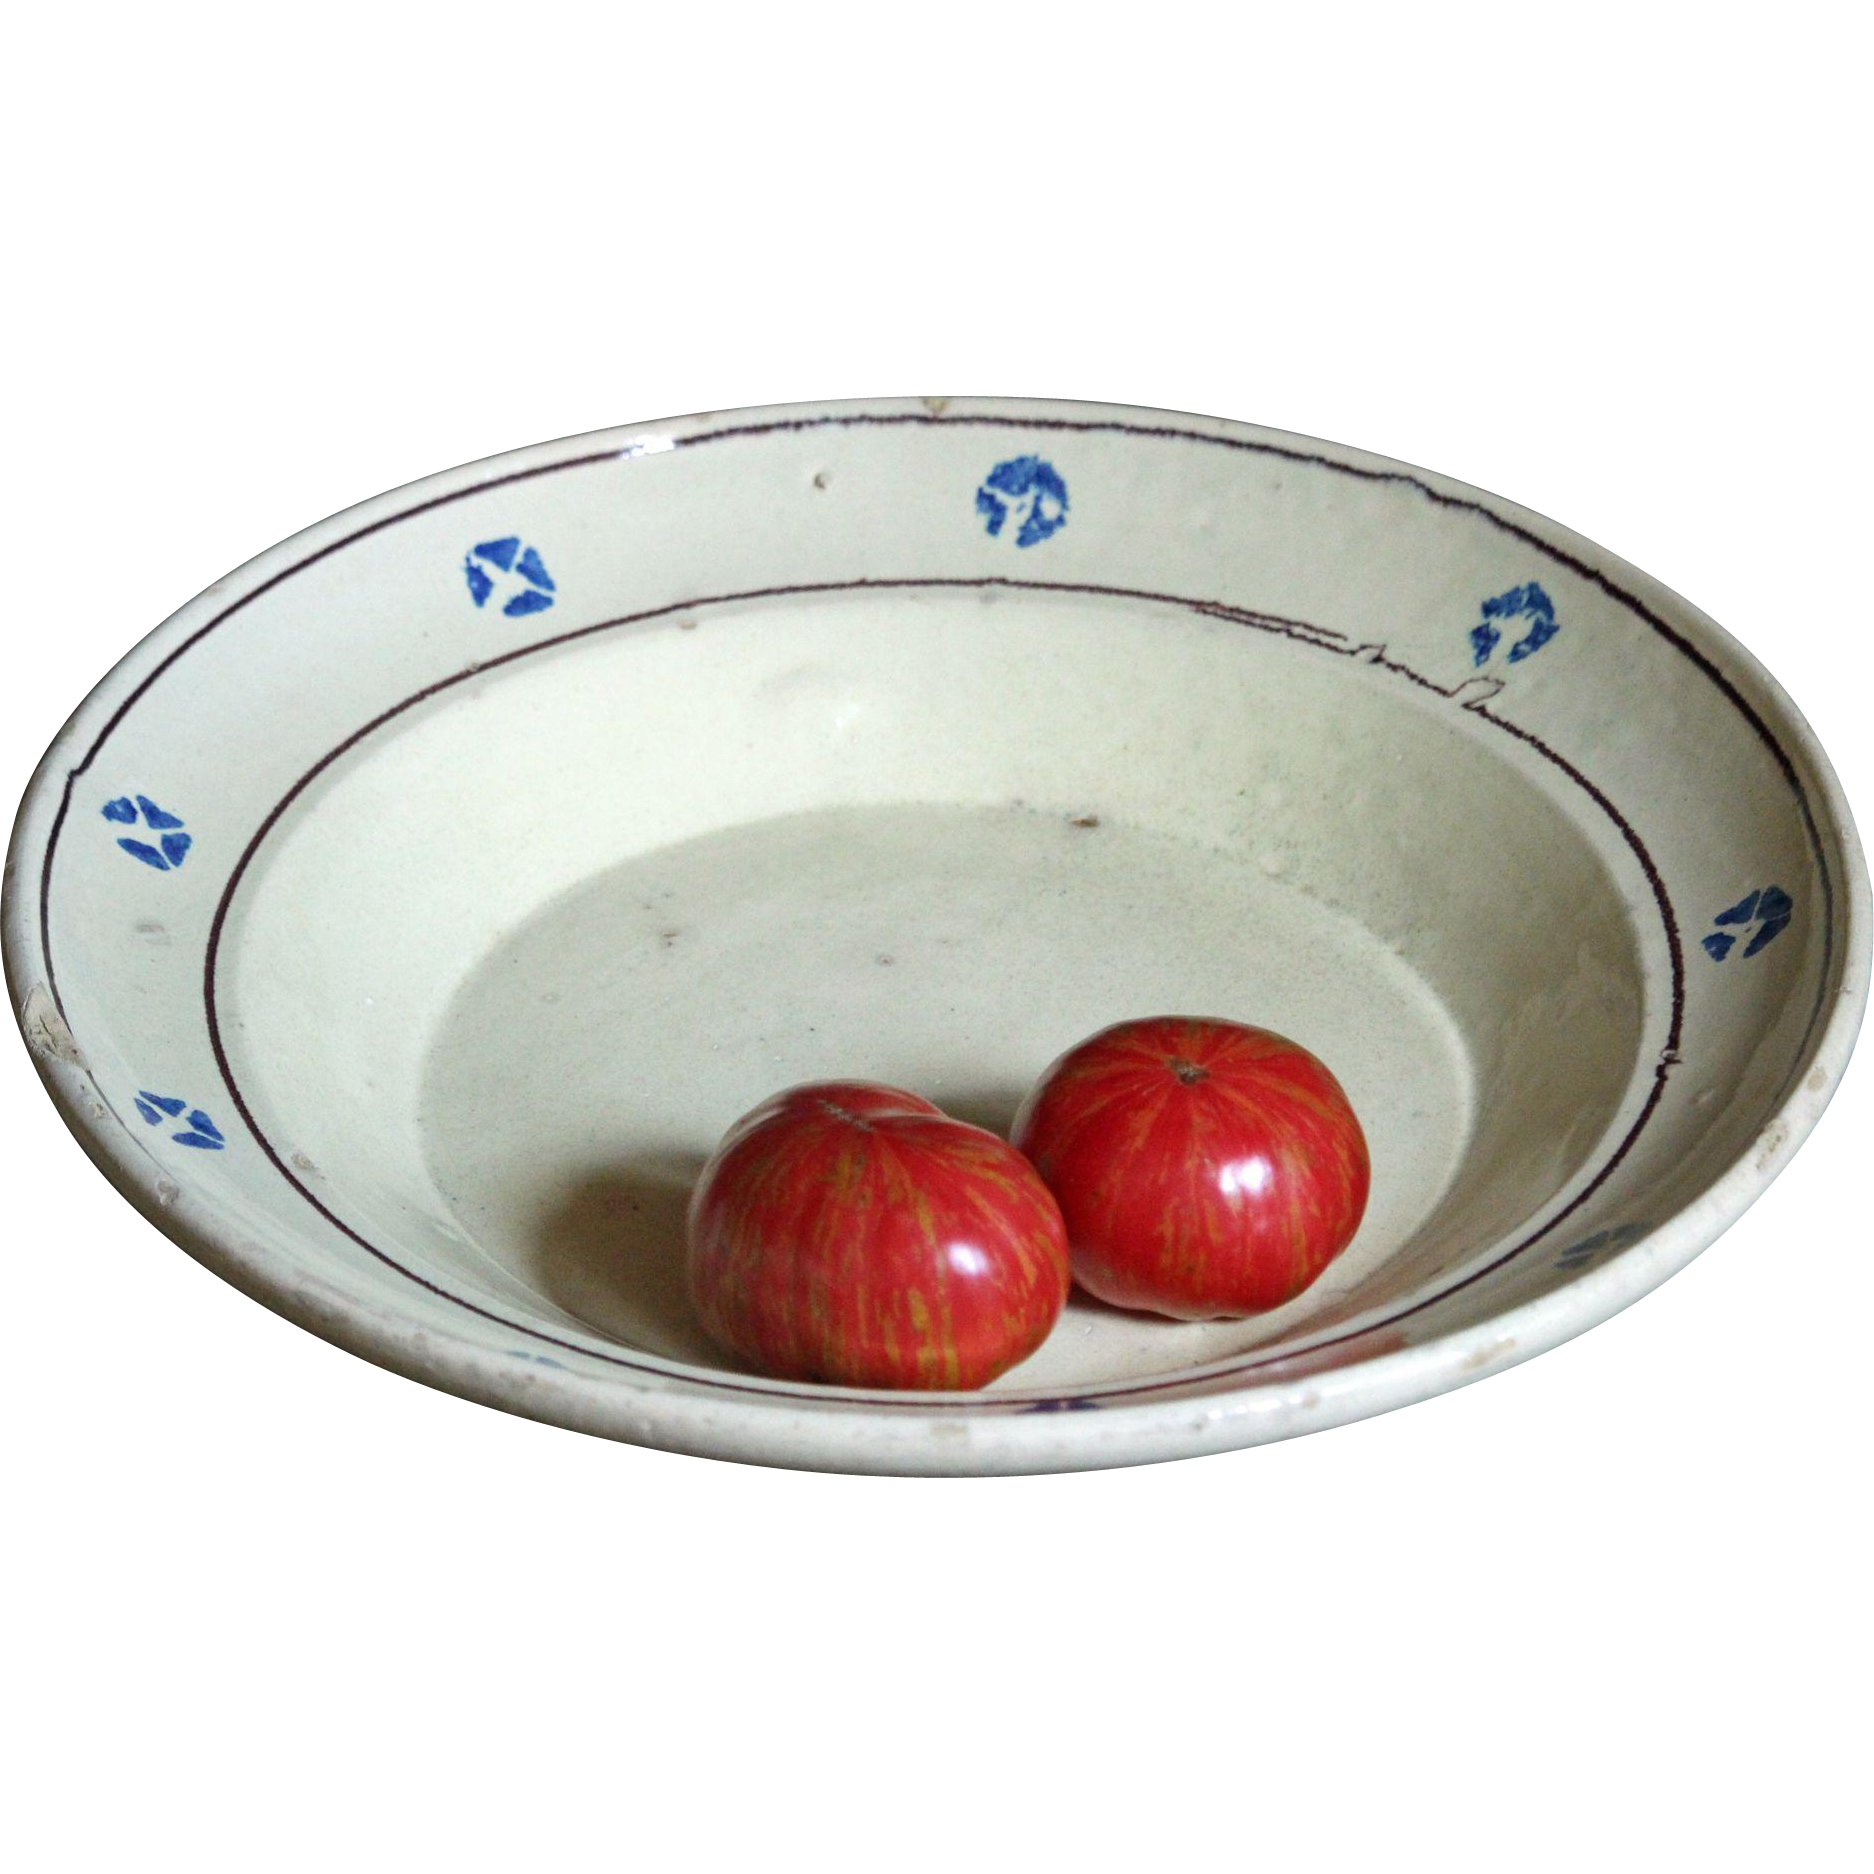 Antique Italian Puglia Glazed Earthenware Dish - Terracotta  / Spongeware Platter / Bowl